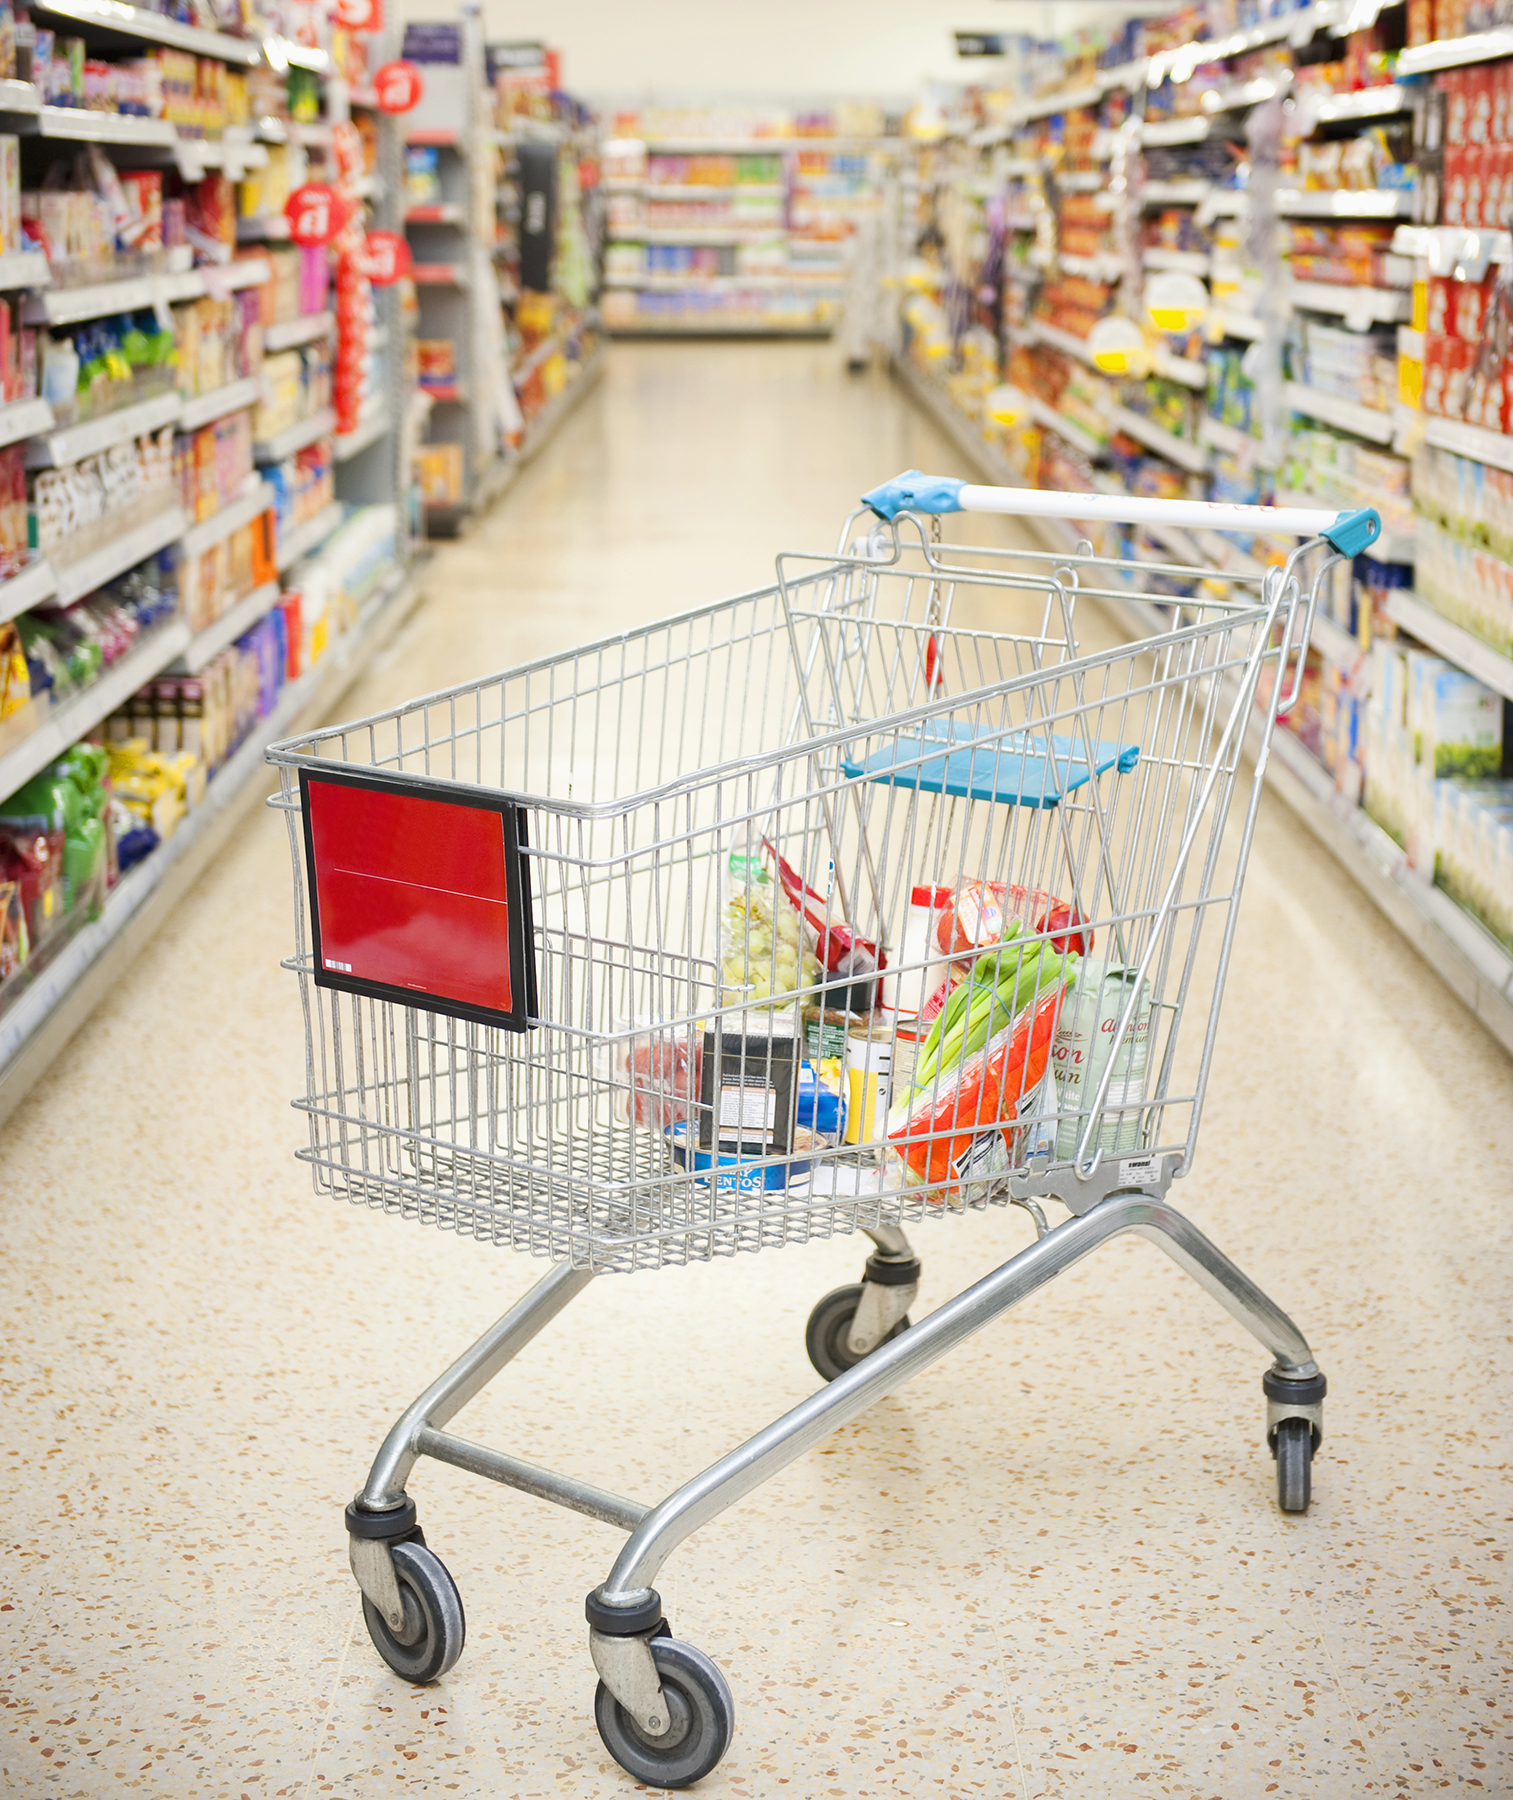 Grocery store aisle and cart